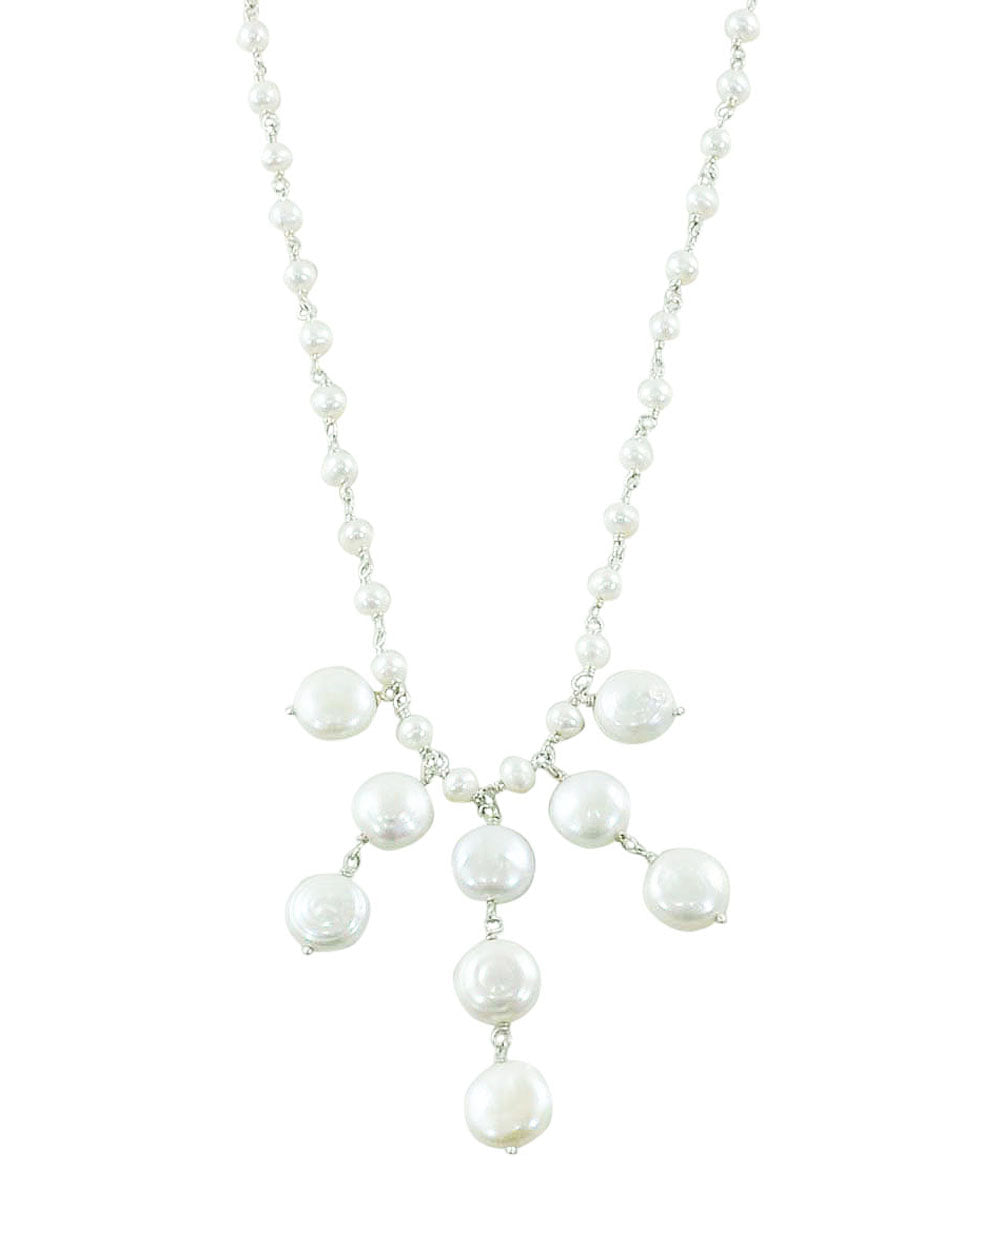 Stylish White Pearls Layered Necklace